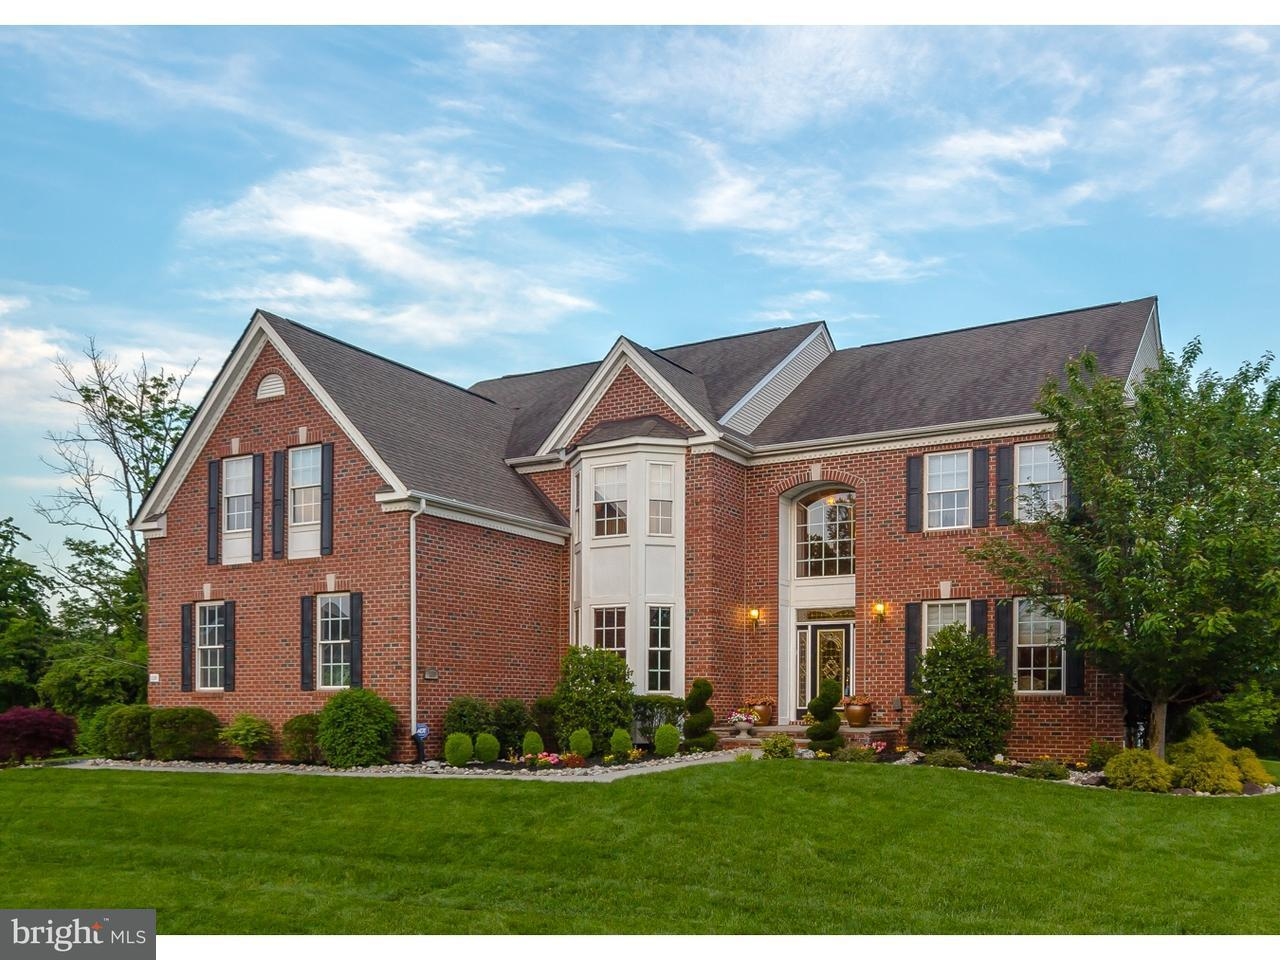 Single Family Home for Sale at 139 GRASSHOPPER Drive Ivyland, Pennsylvania 18974 United States